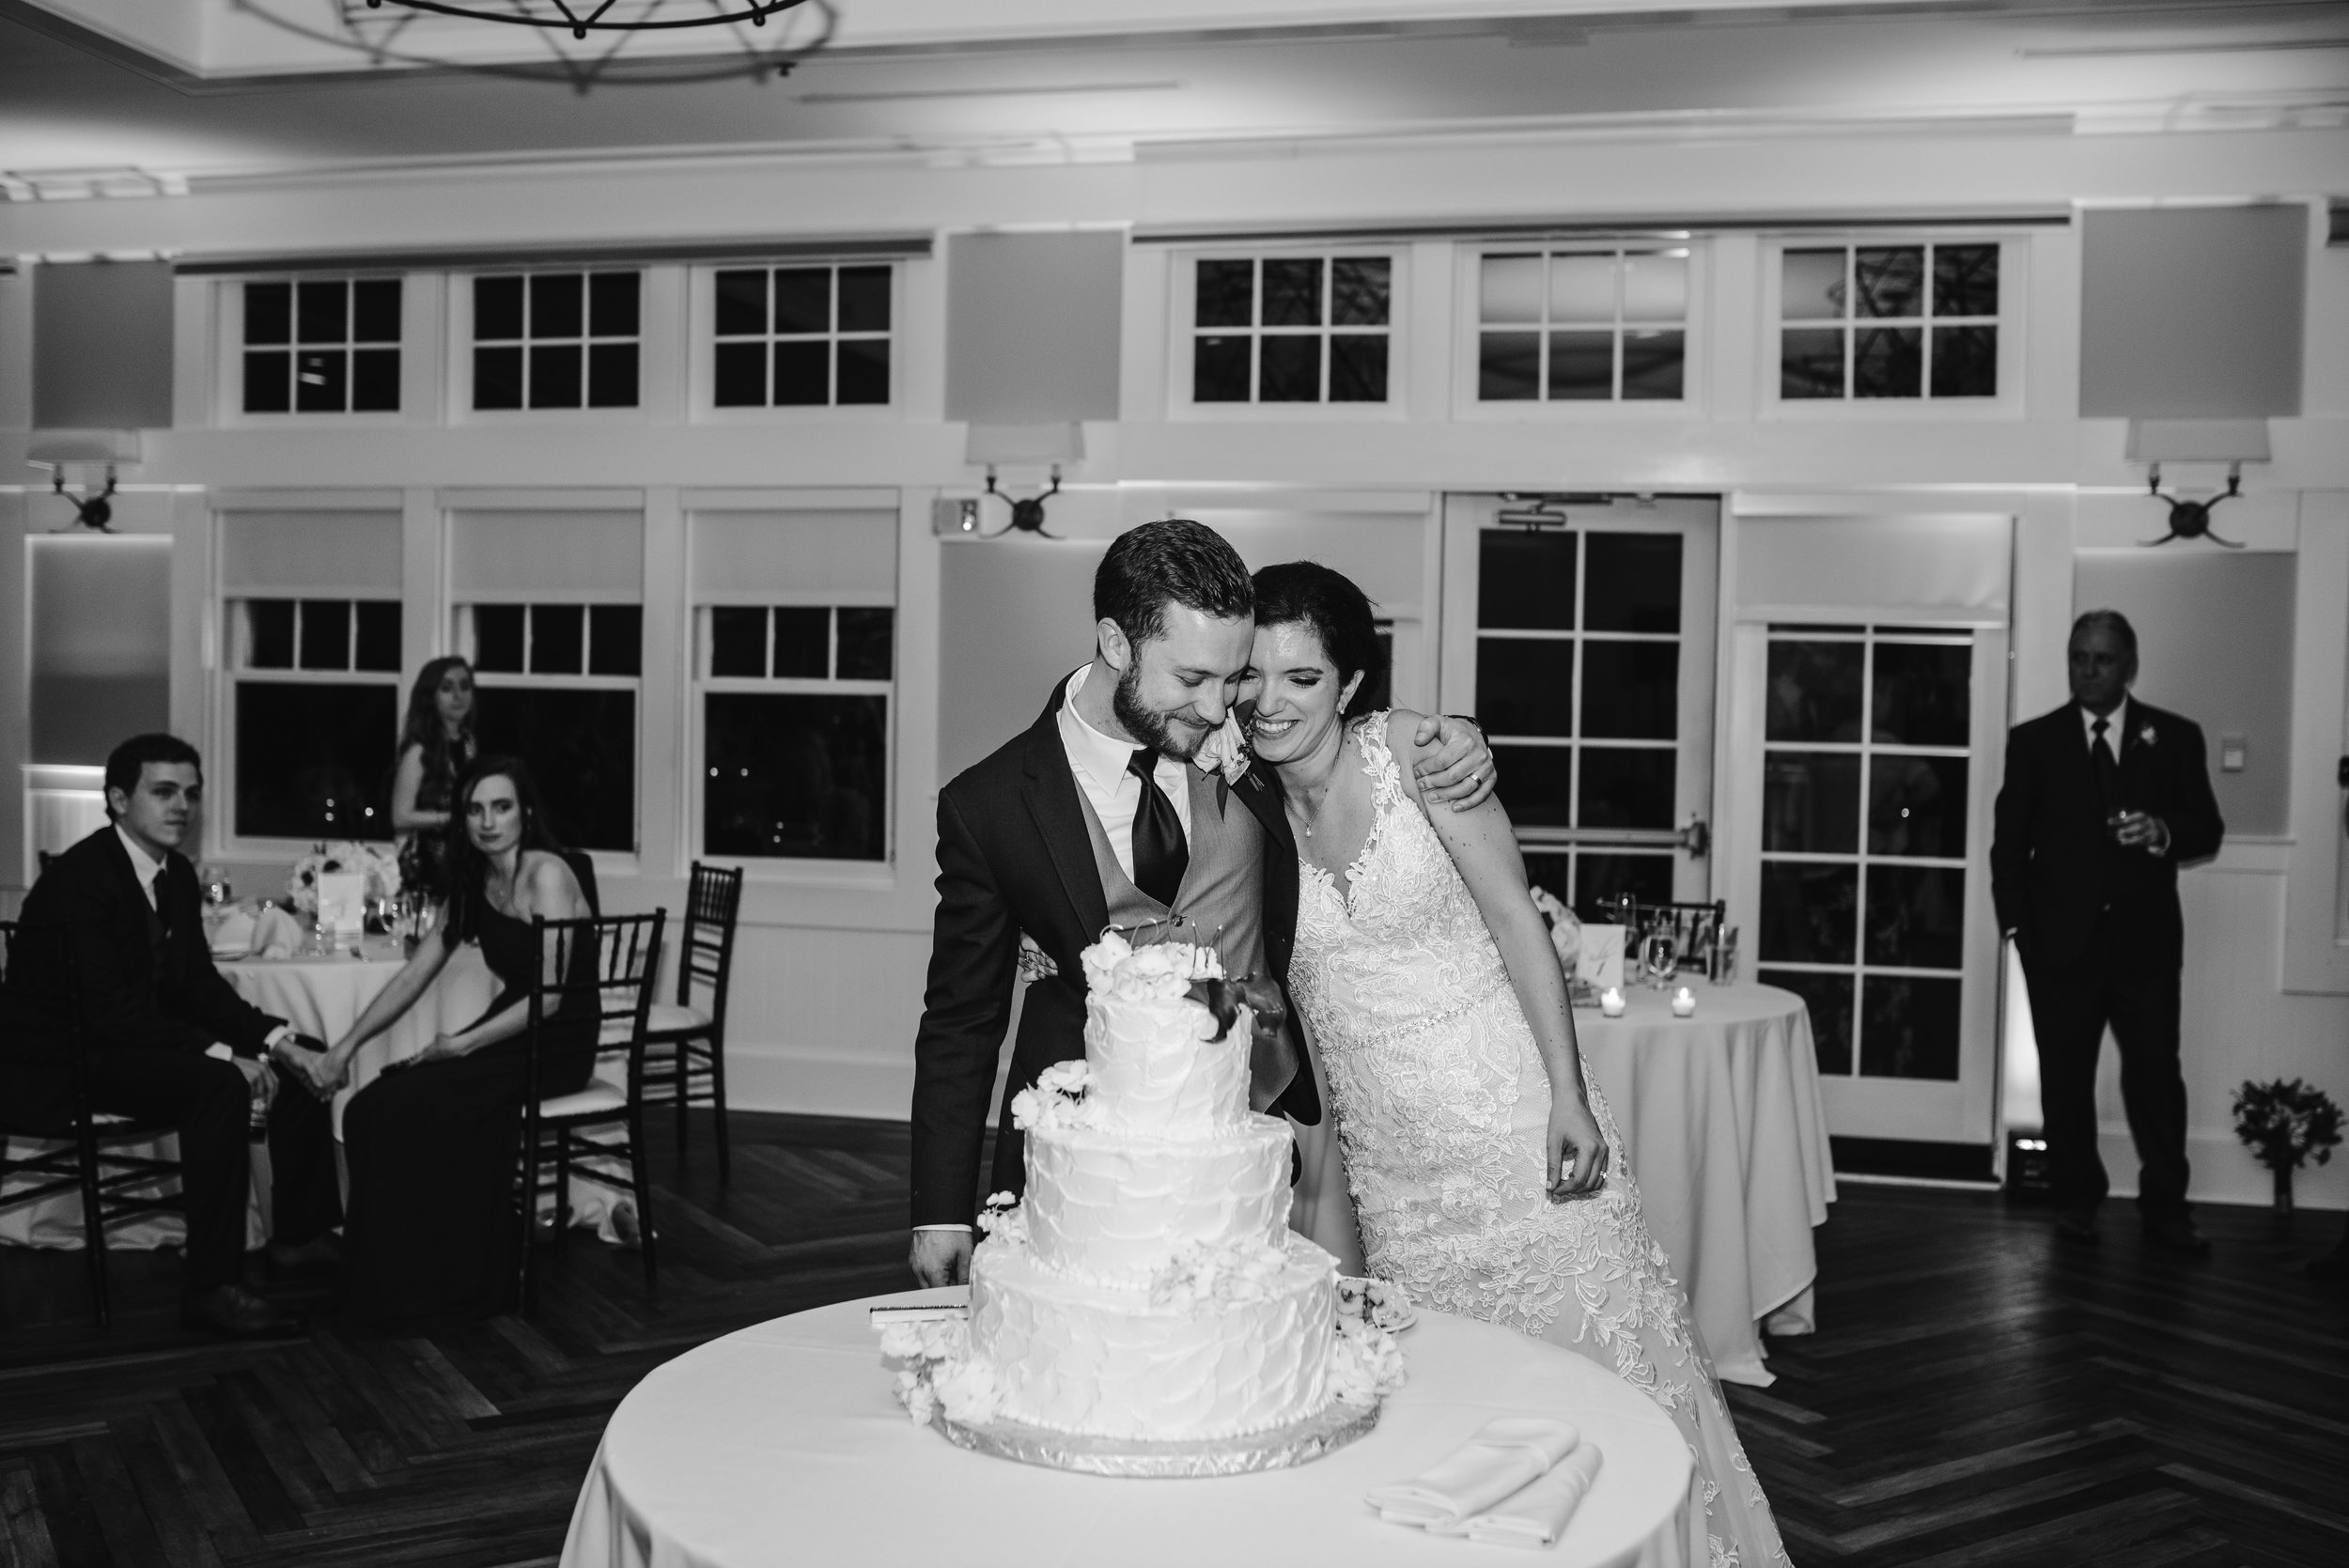 chesapeakebaybeachclubweddingblog-60.jpg